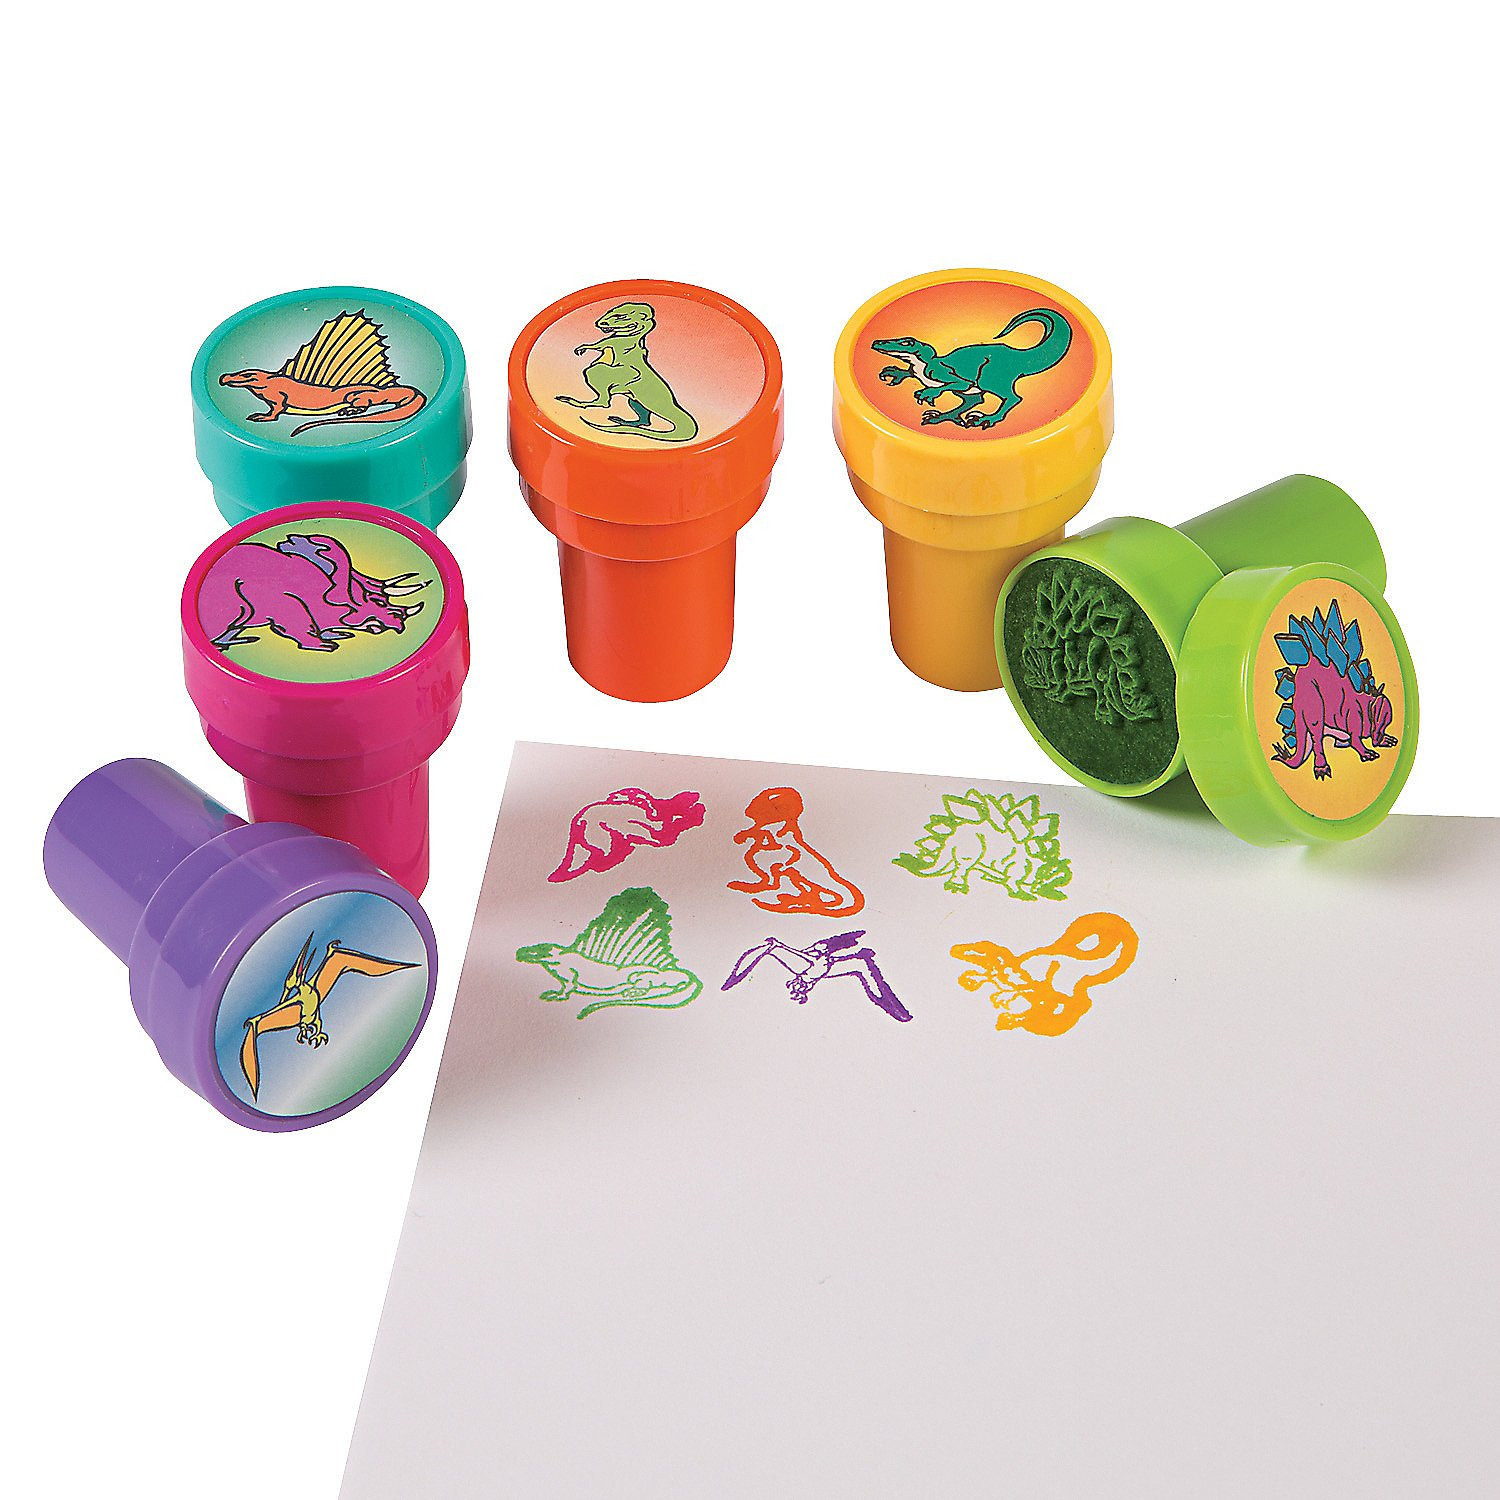 Dinosaur Stickers William /& Douglas Dinosaur Party Bundle Supplies Favors for Children/'s Dinosaur Birthday Party Rings /& Stampers Cellophane Bags